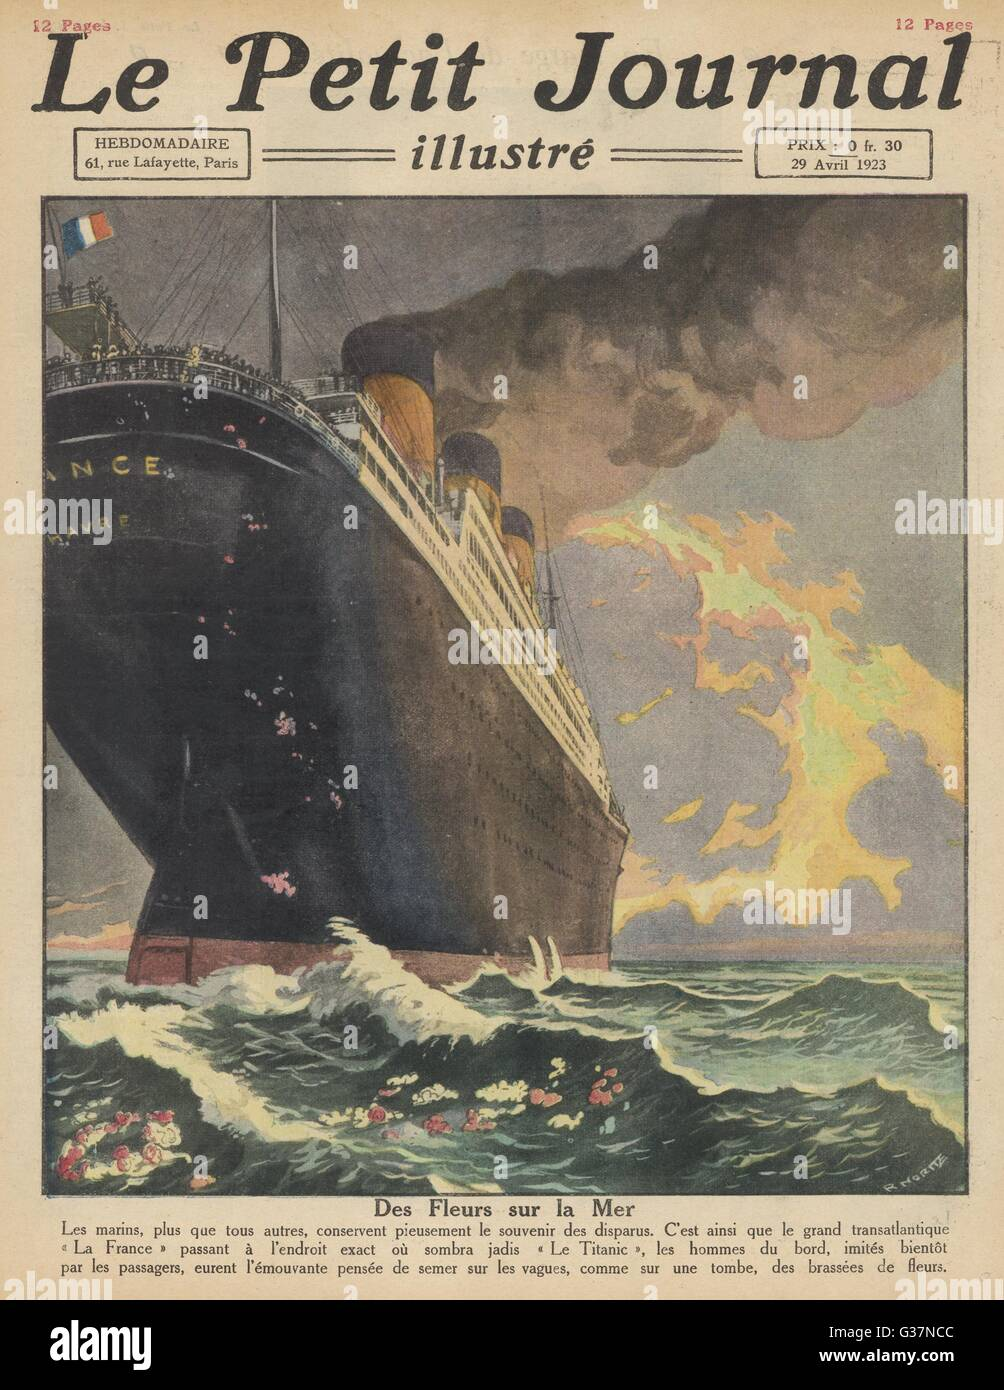 The S S FRANCE leaves a floral  tribute to those lost on the  SS Titanic in 1912.        Date: 1923 - Stock Image